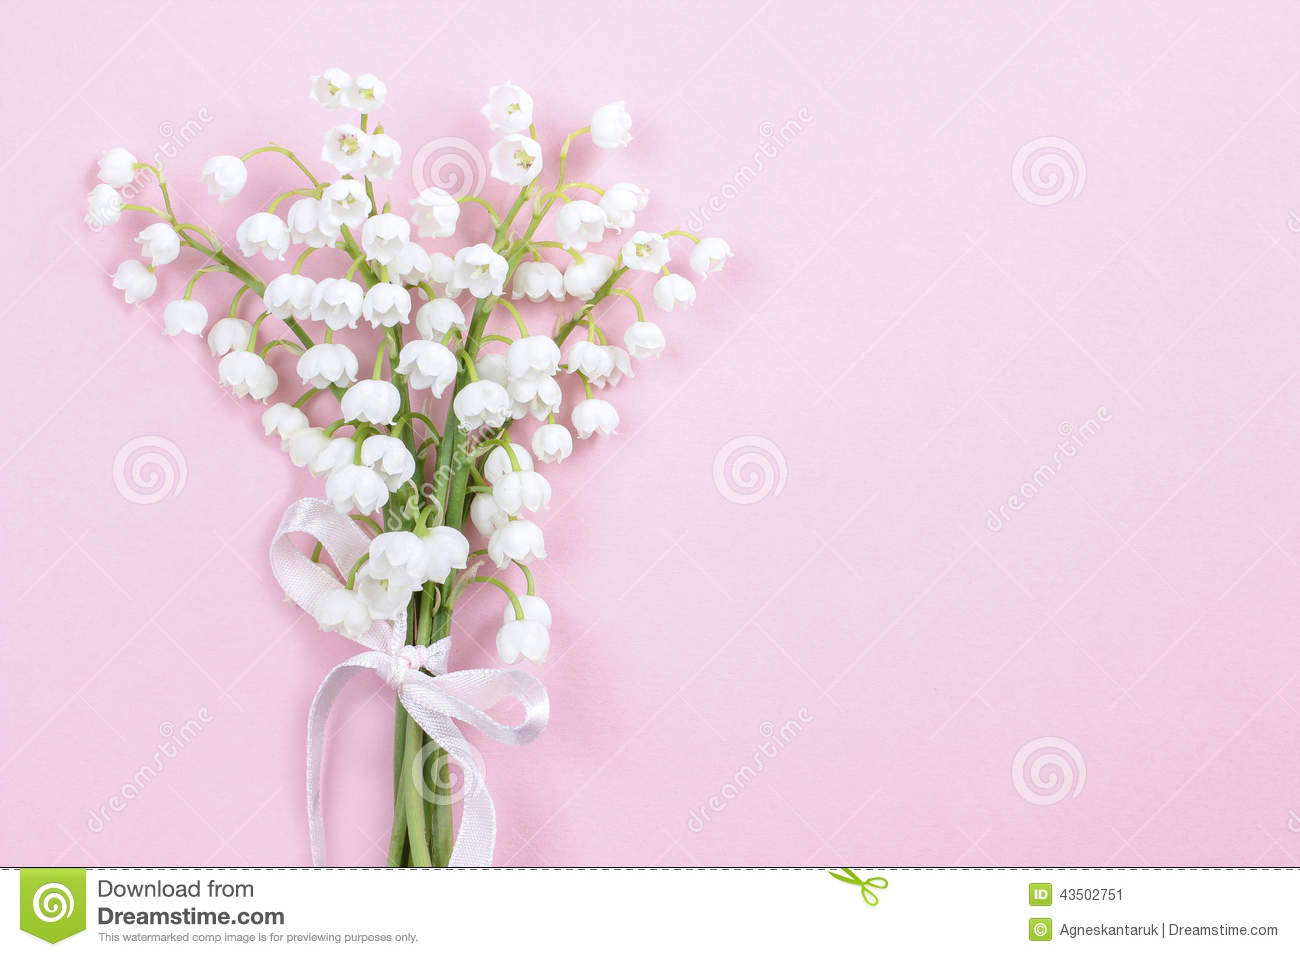 Lilly of the valley flowers on bright pink background stock image royalty free stock photo izmirmasajfo Choice Image